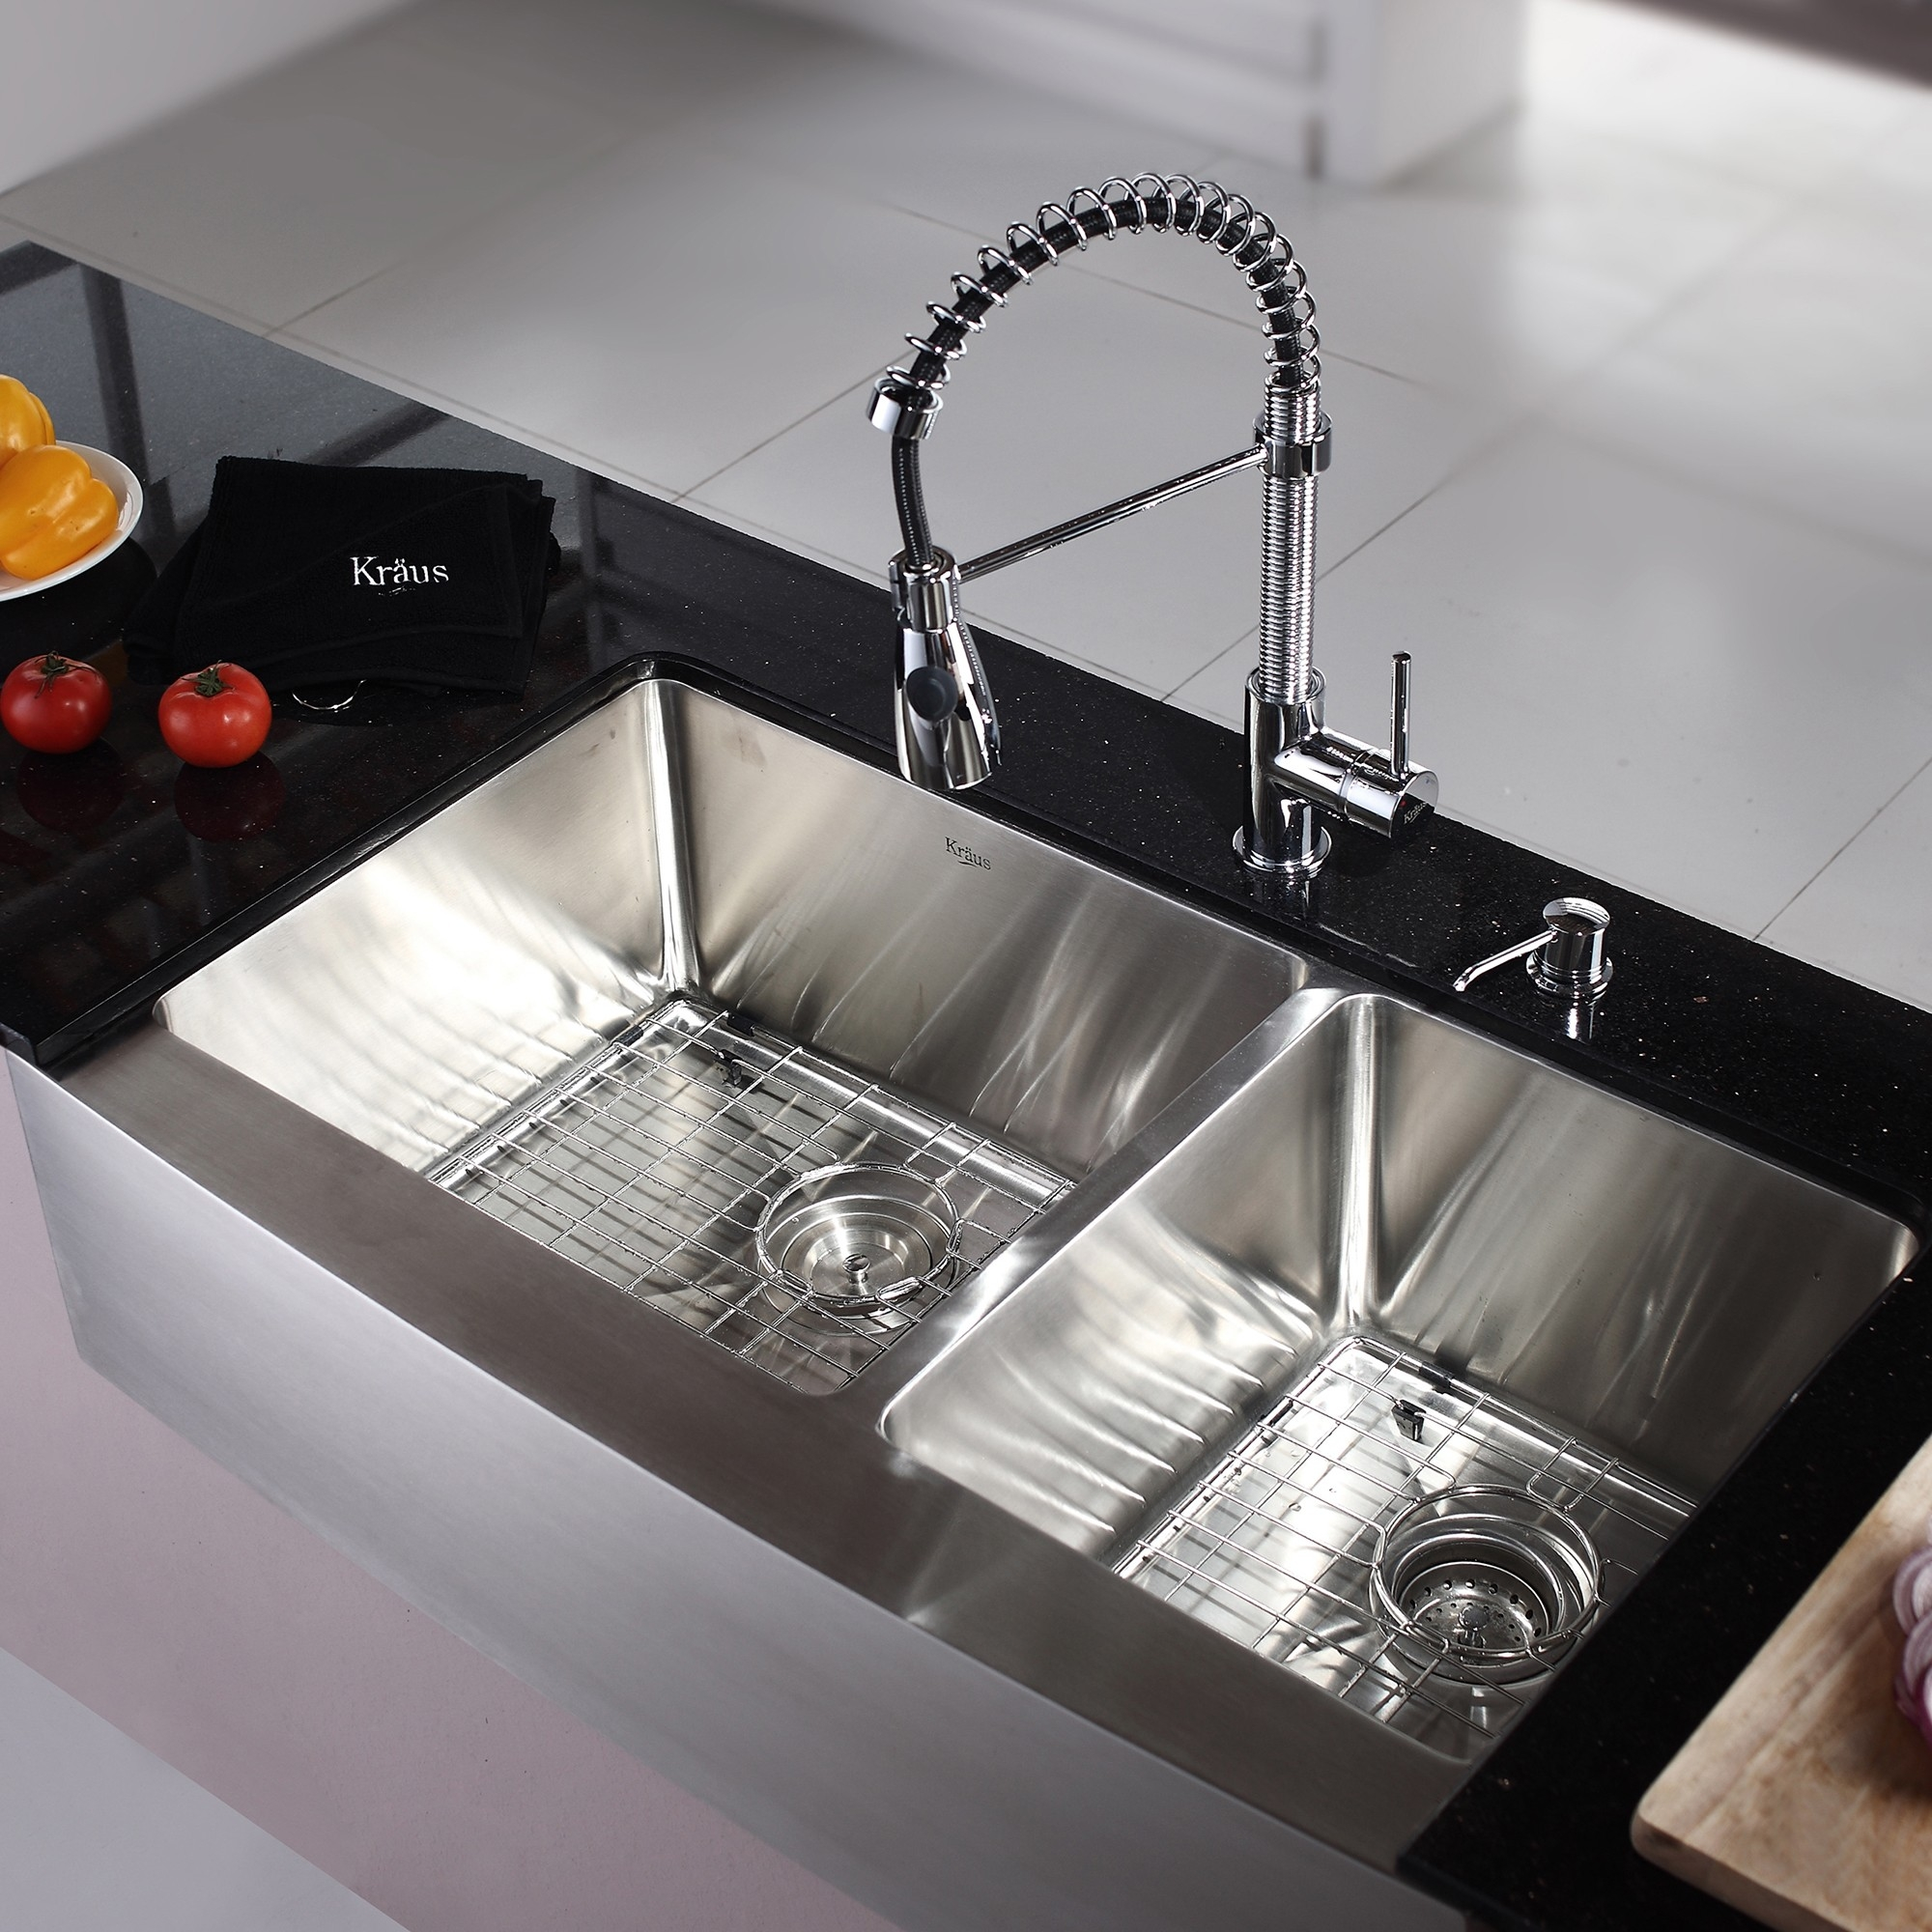 Ideas, stainless steel farmhouse sink with faucet holes stainless steel farmhouse sink with faucet holes kitchen convenient cleaning with stainless steel farm sink 2000 x 2000  .